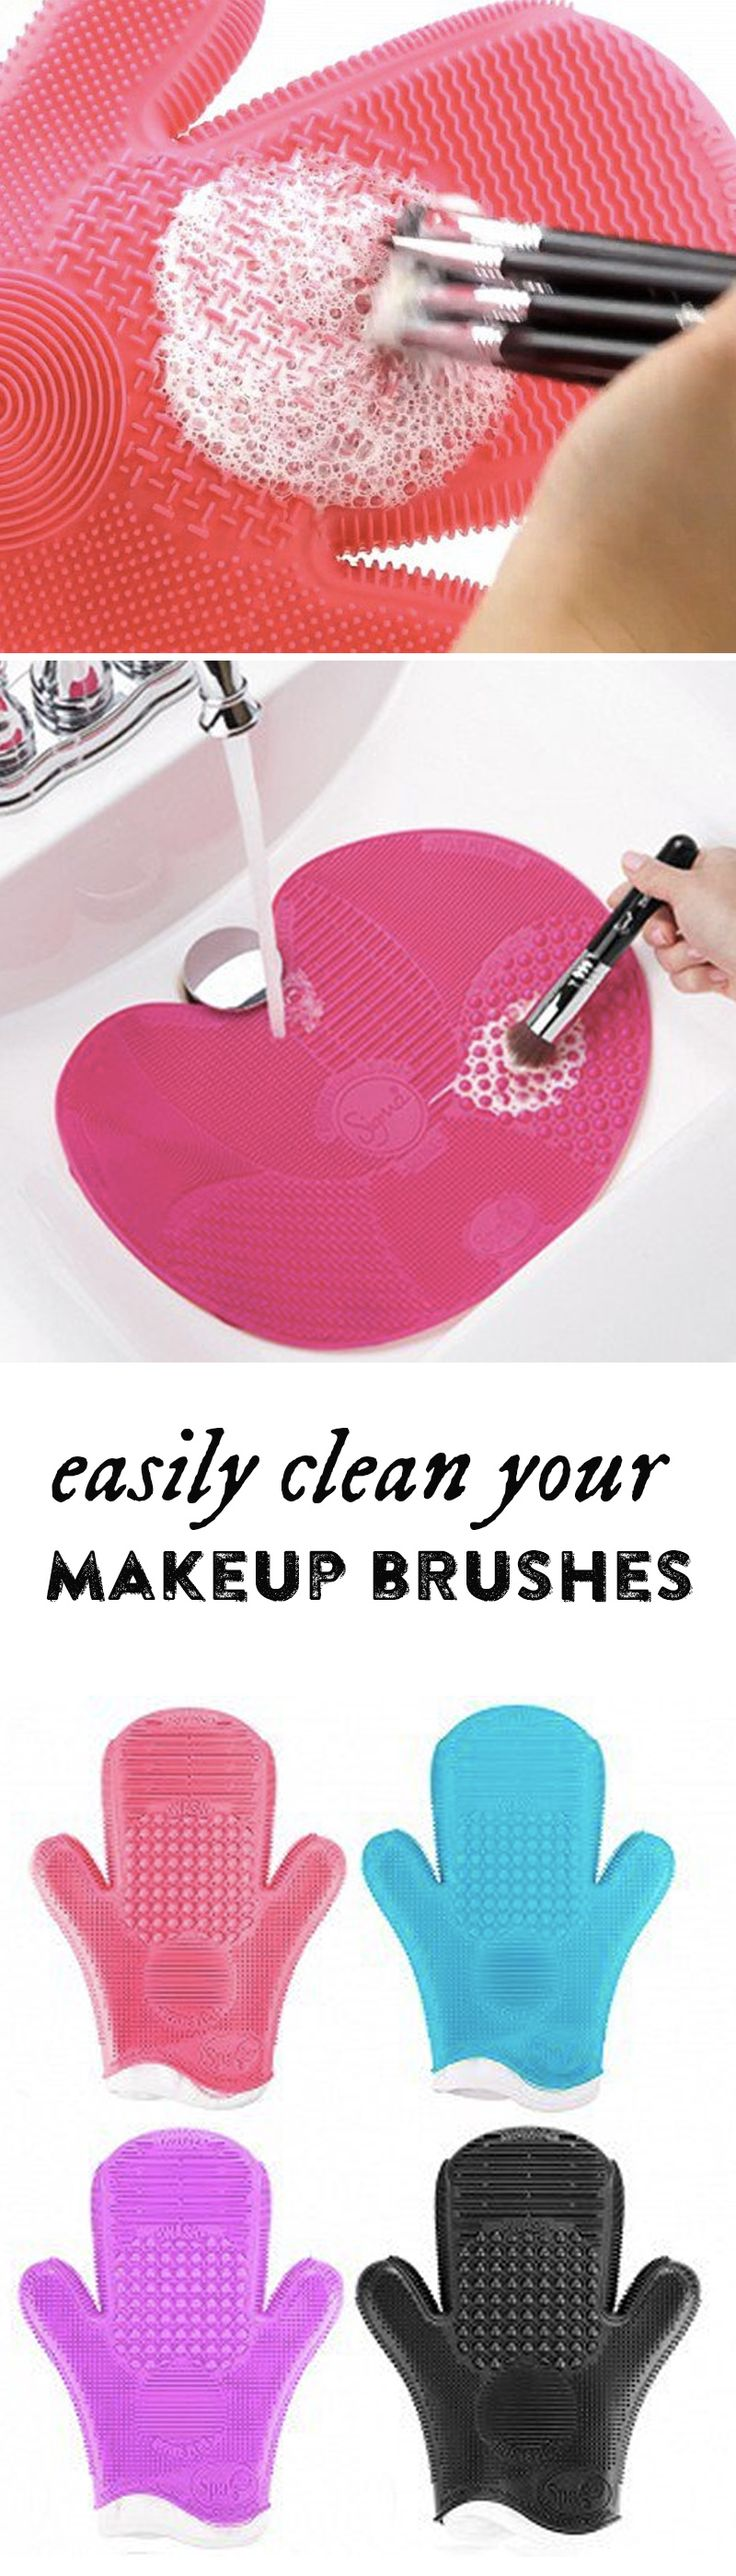 Extend the life of costly cosmetic brushes and wash away bacteria in one clean sweep.